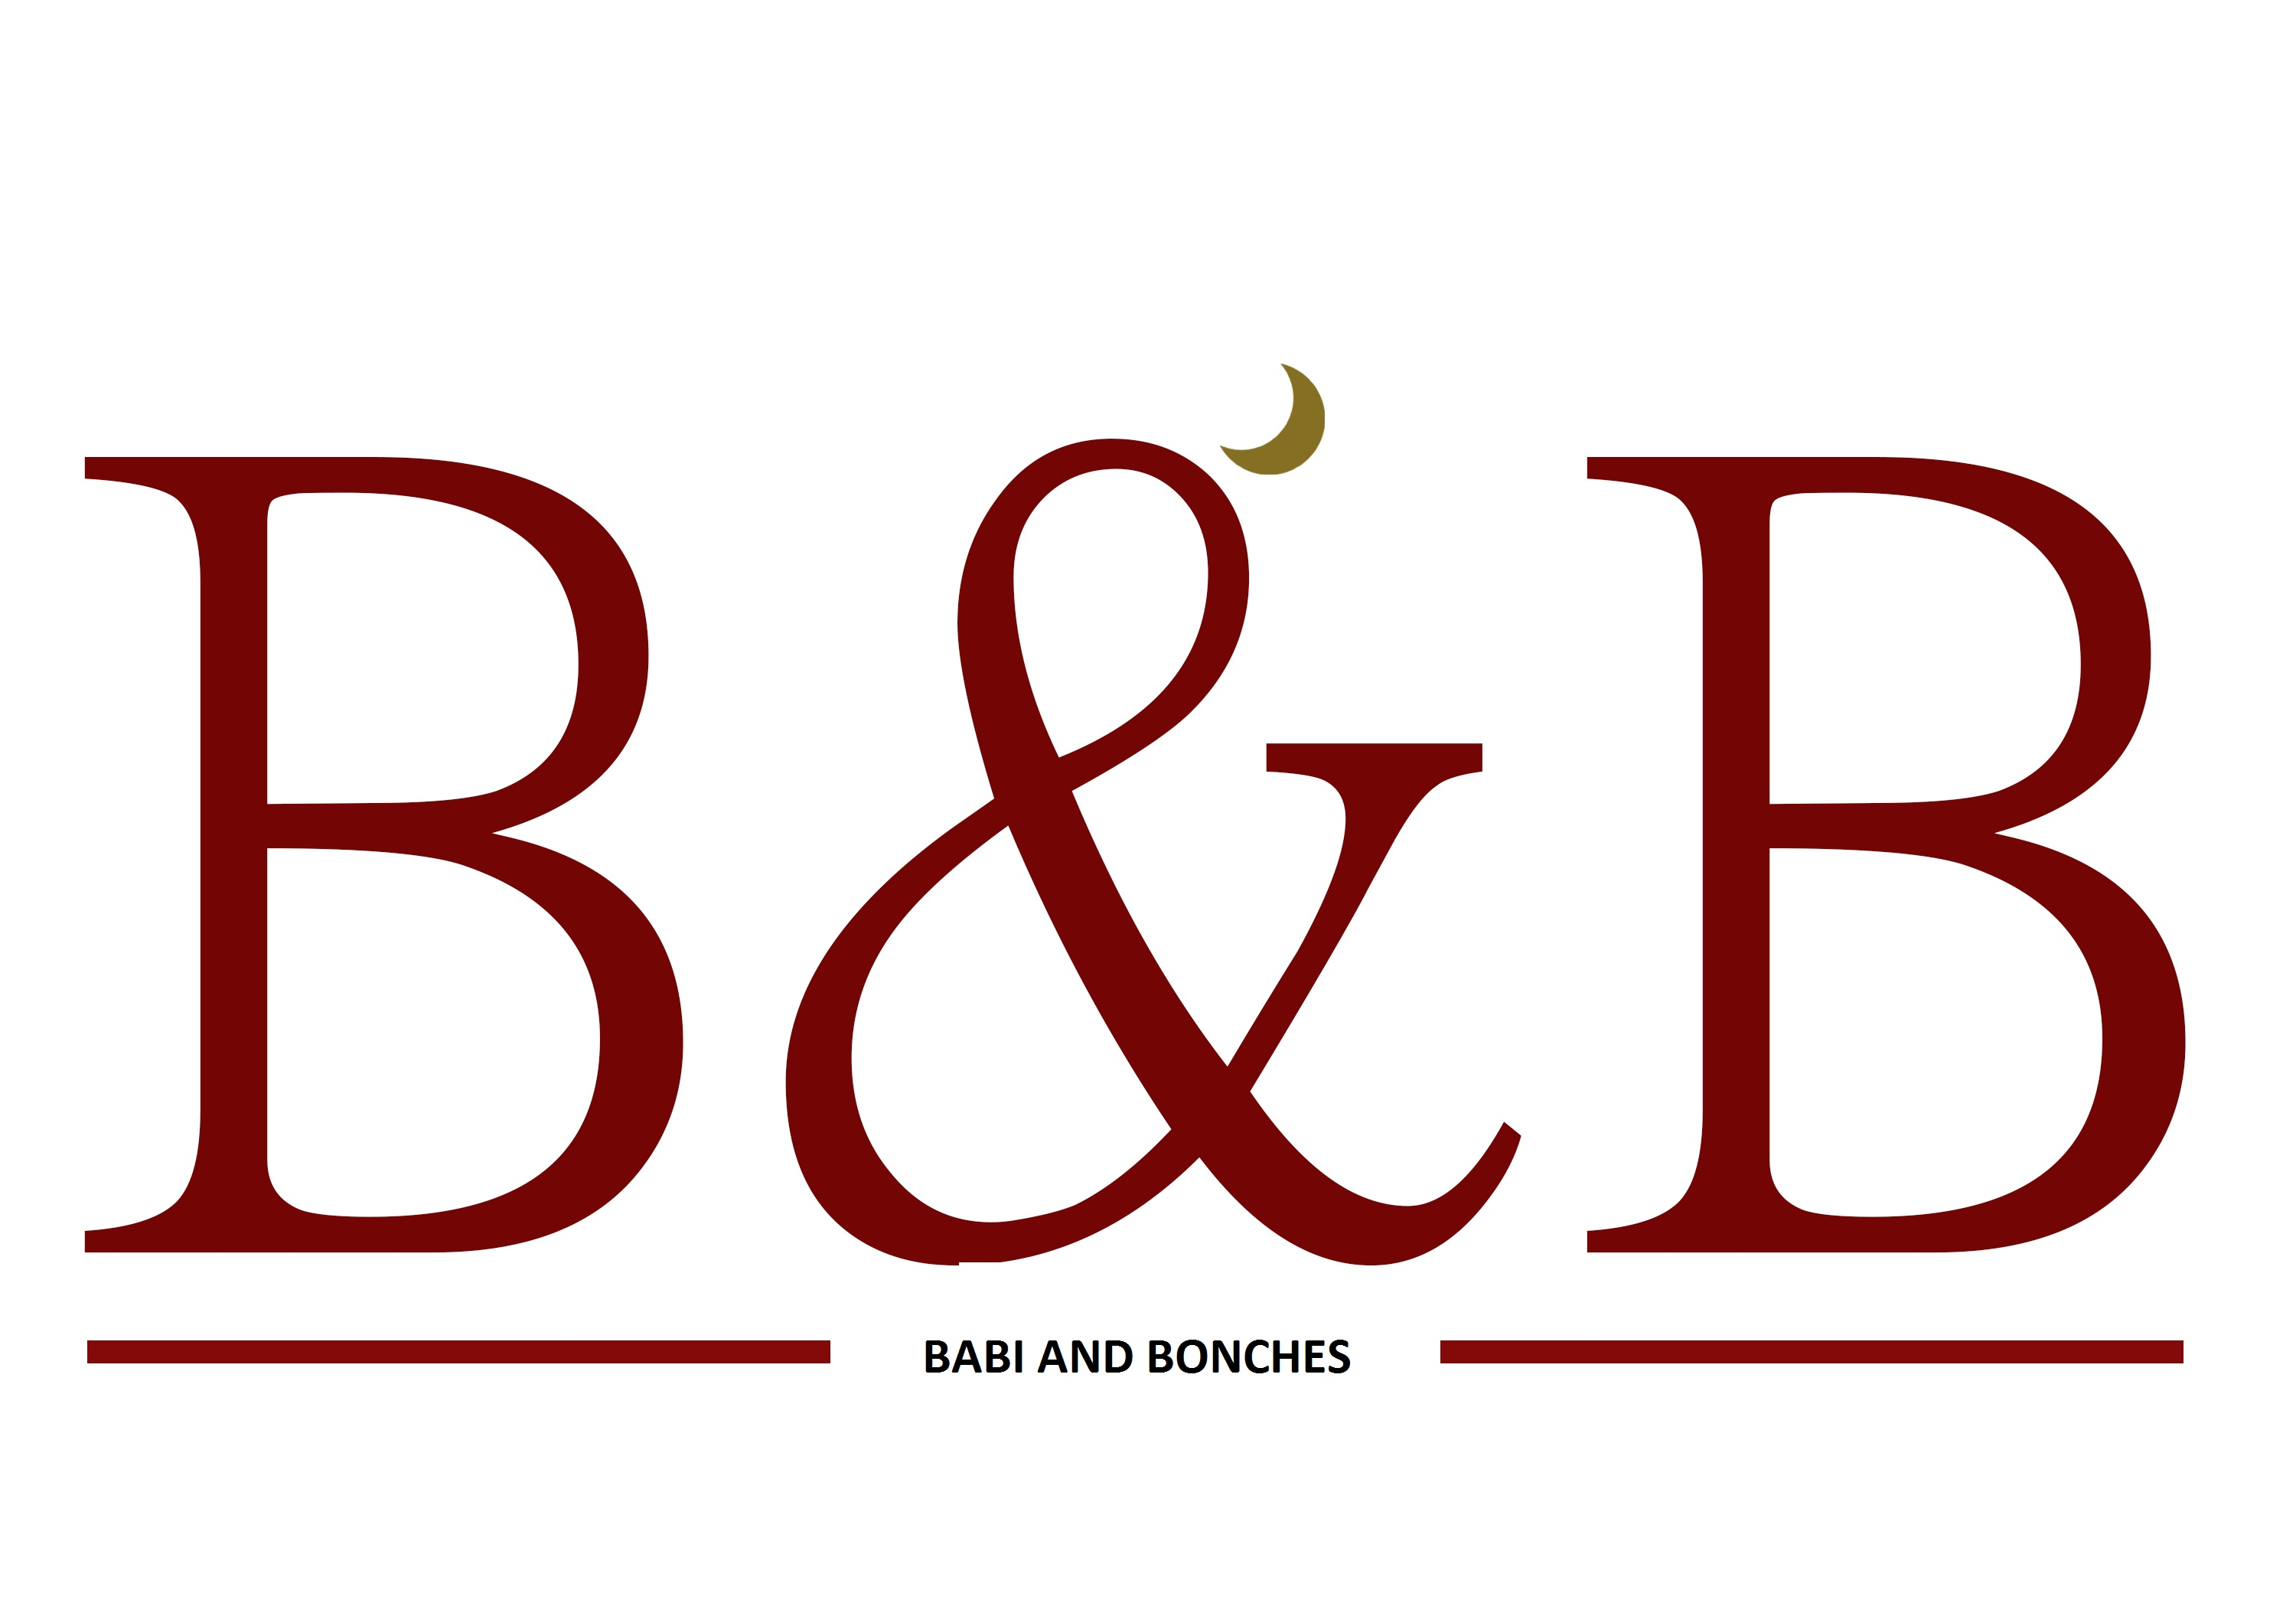 BABI AND BONCHES COMPANY LIMITED